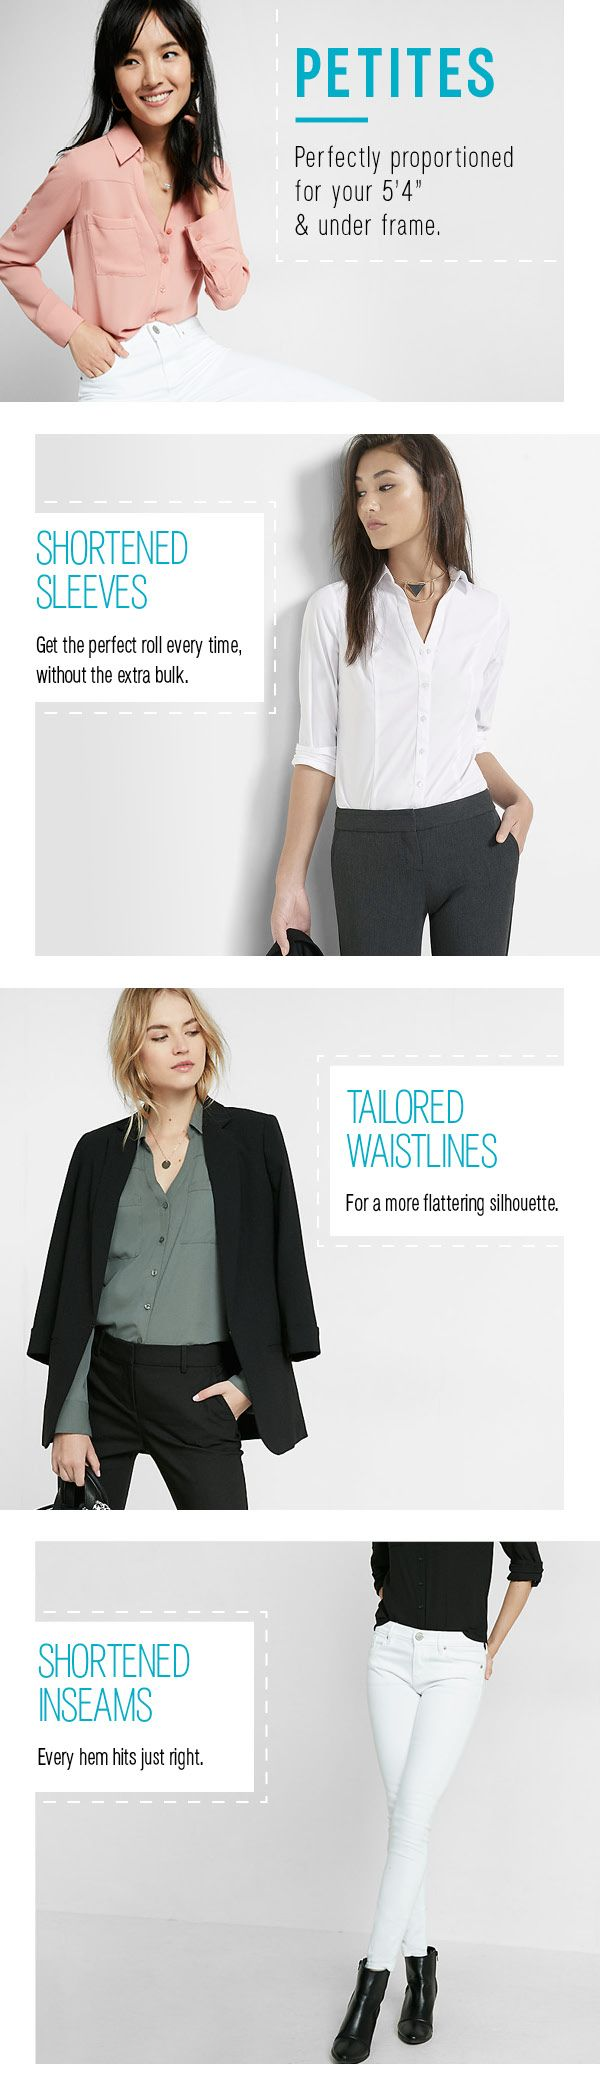 "Time to break up with your tailor. Introducing the new Petites collection at Express. Each piece is designed to perfectly fit your 5'4"" and under frame. Tailored waistlines, shortened inseams and shortened sleeves mean no more fussing with alterations to get the perfect fit"